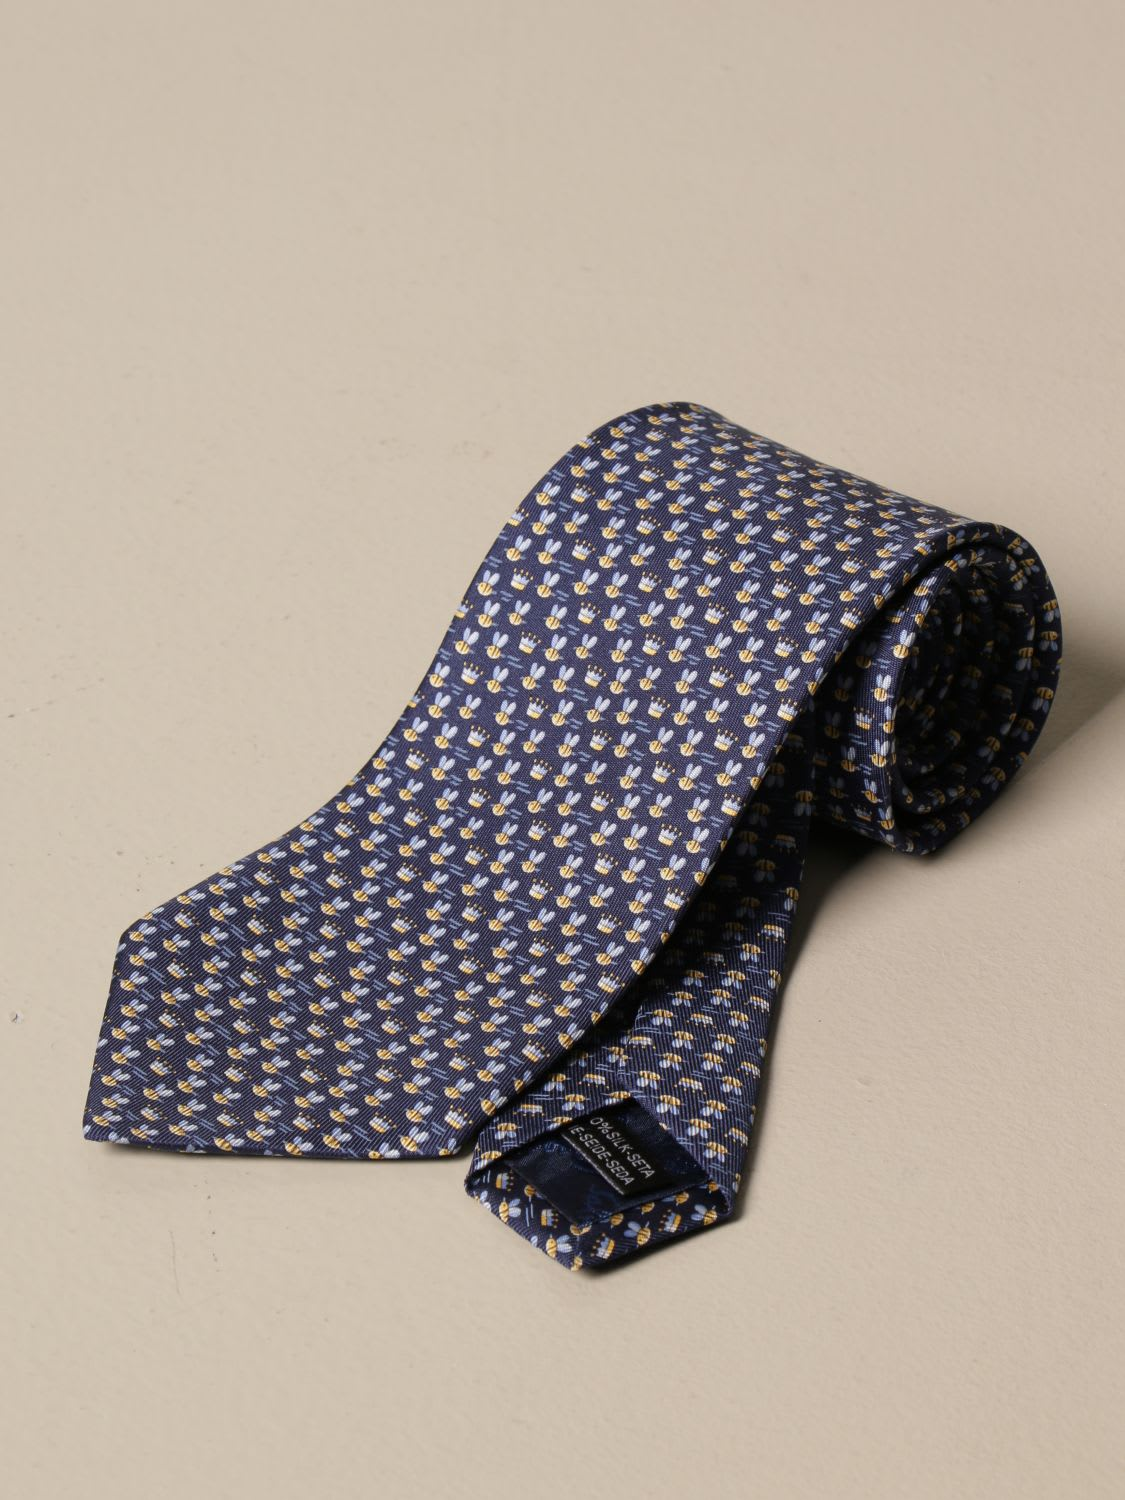 Salvatore Ferragamo Tie Salvatore Ferragamo Silk Tie With Bee Pattern